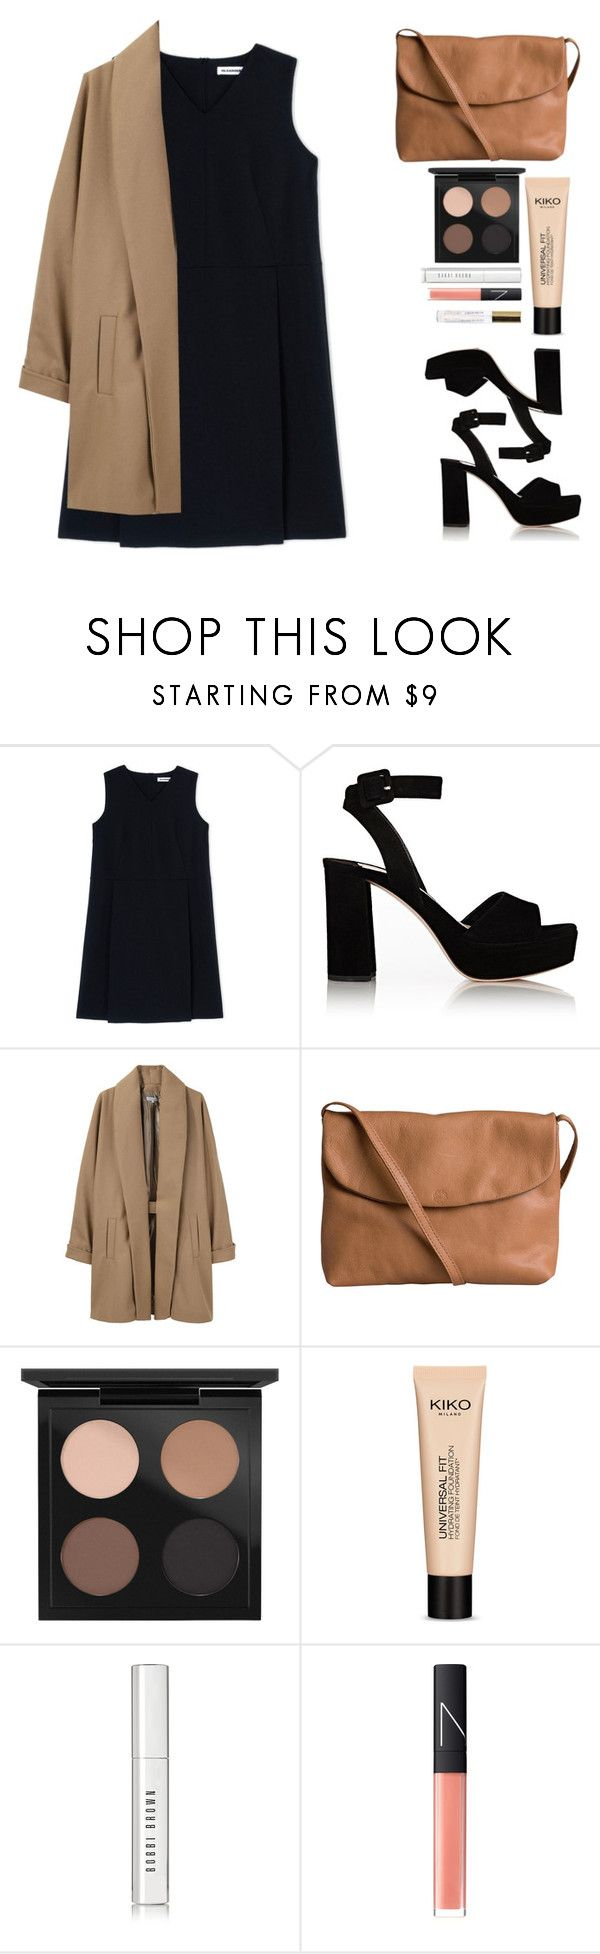 """Untitled #98"" by isabellysantanaa ❤ liked on Polyvore featuring Jil Sander, Miu Miu, Surface To Air, Pieces, MAC Cosmetics, Bobbi Brown Cosmetics and NARS Cosmetics"